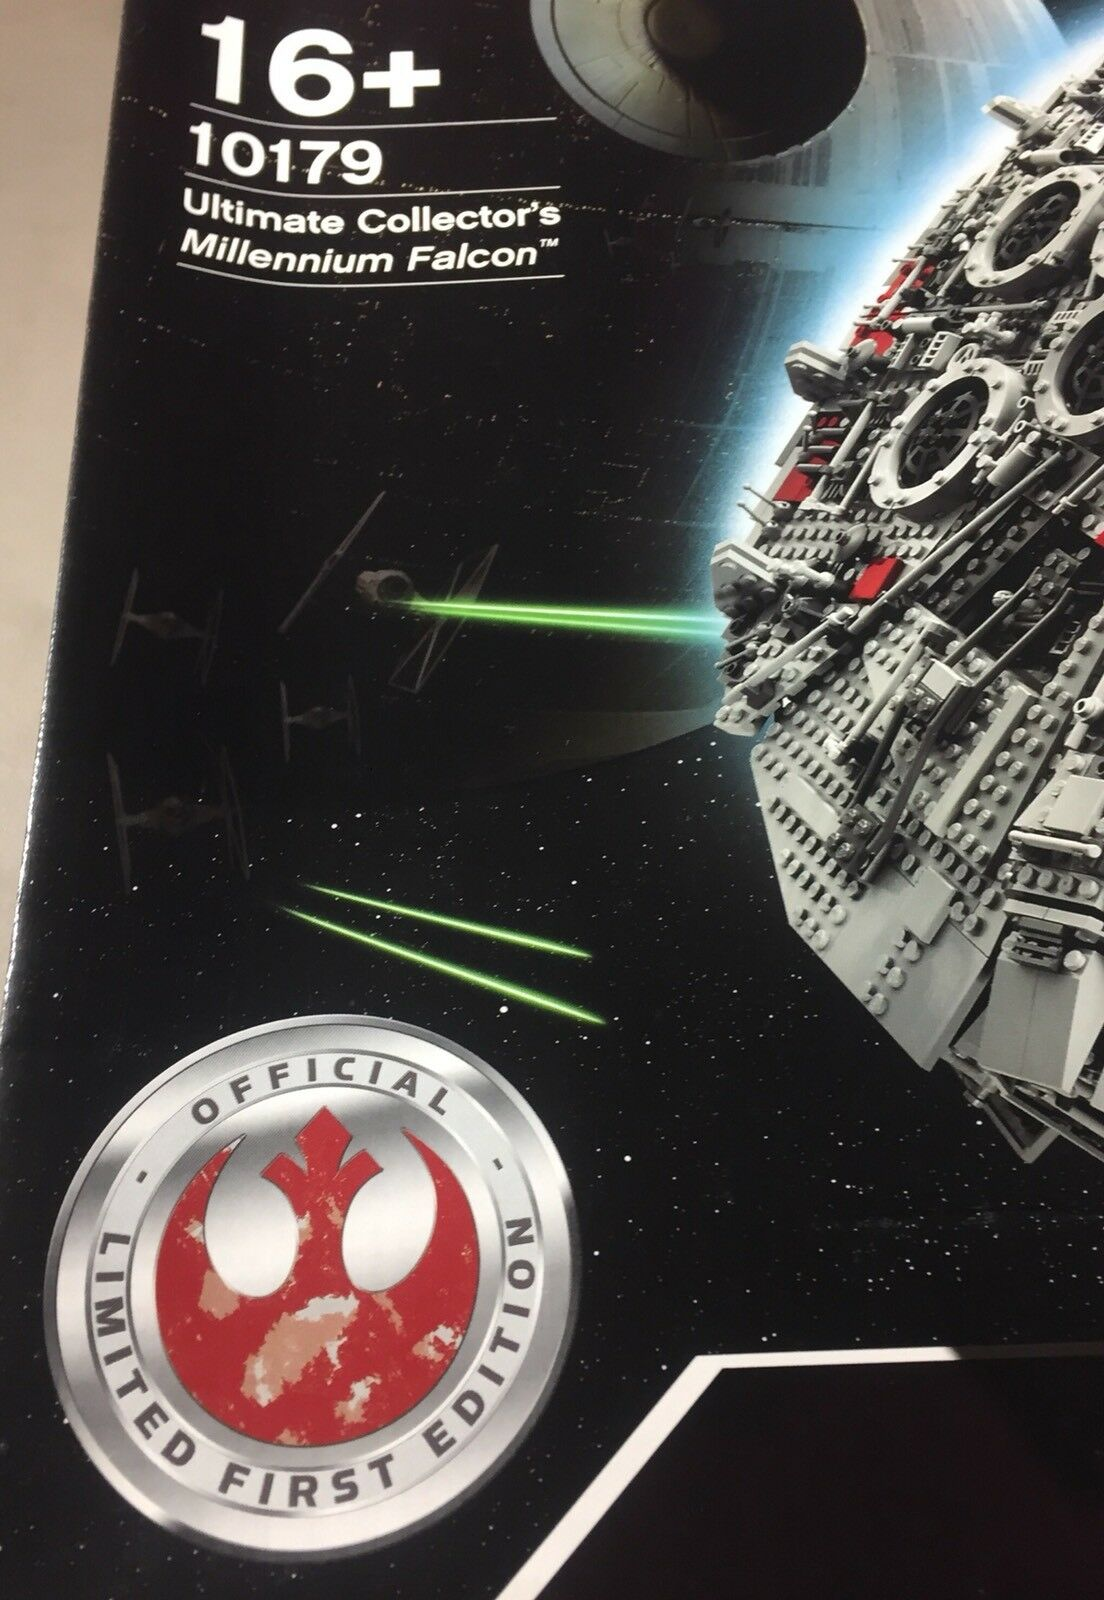 Lego Star Wars Ultimate Collector's Millennium Falcon First Edition Set 10179 LE